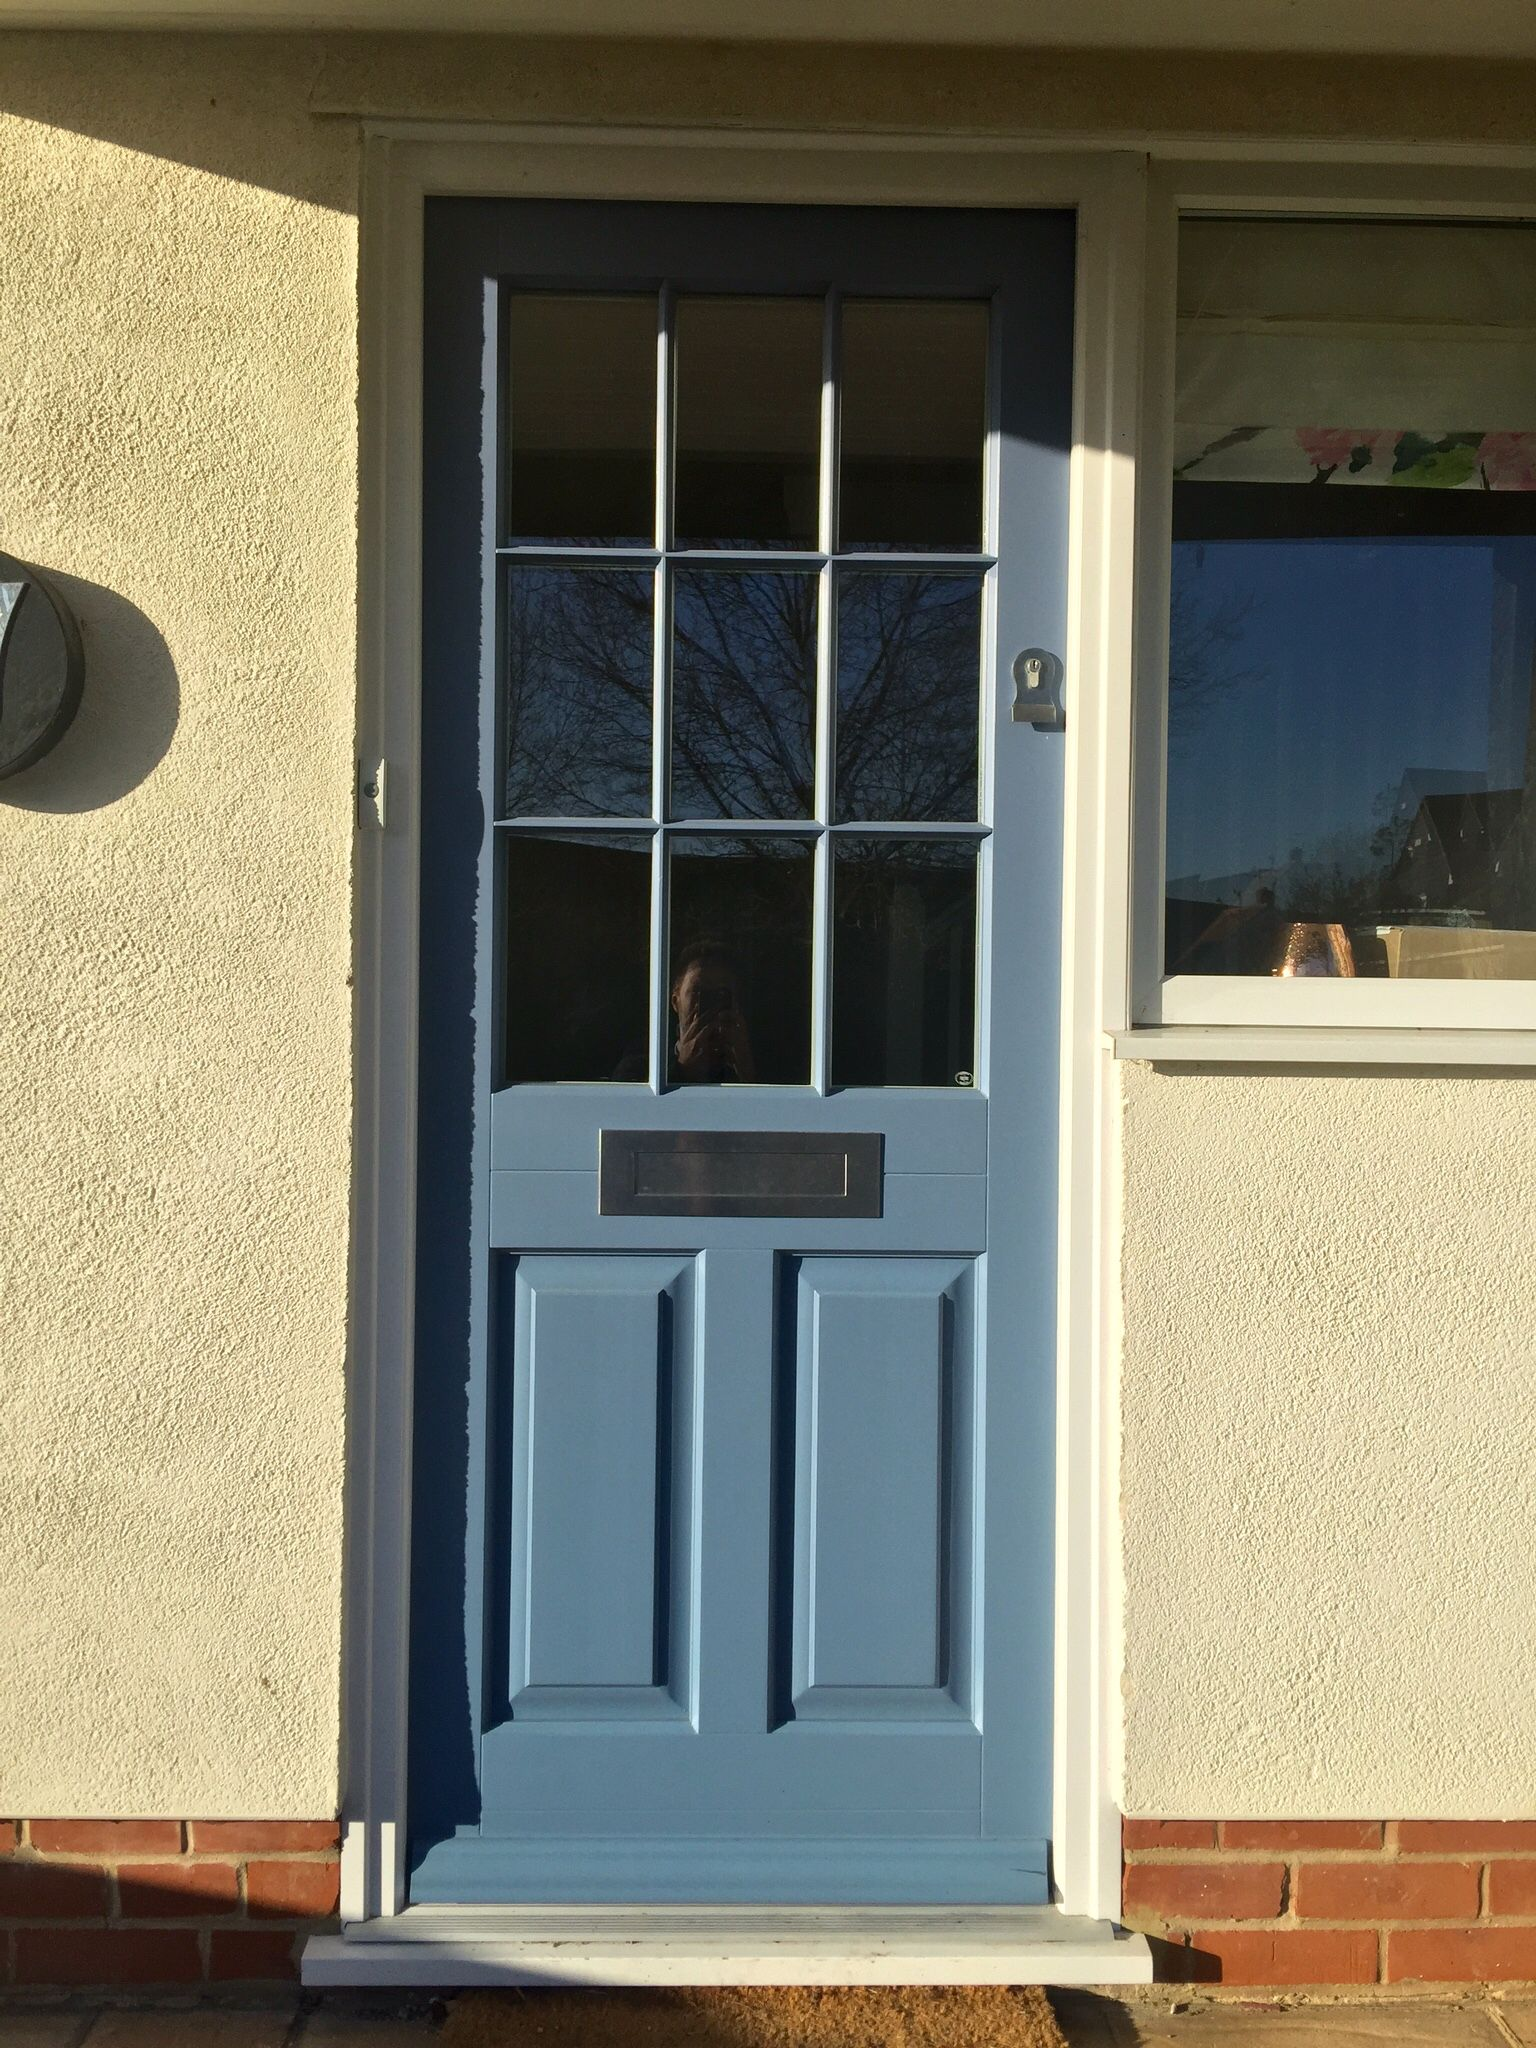 Timber Entrance Door painted RAL 5014 fitted with contemporary stainless steel ironmongery & Timber Entrance Door painted RAL 5014 fitted with contemporary ... pezcame.com